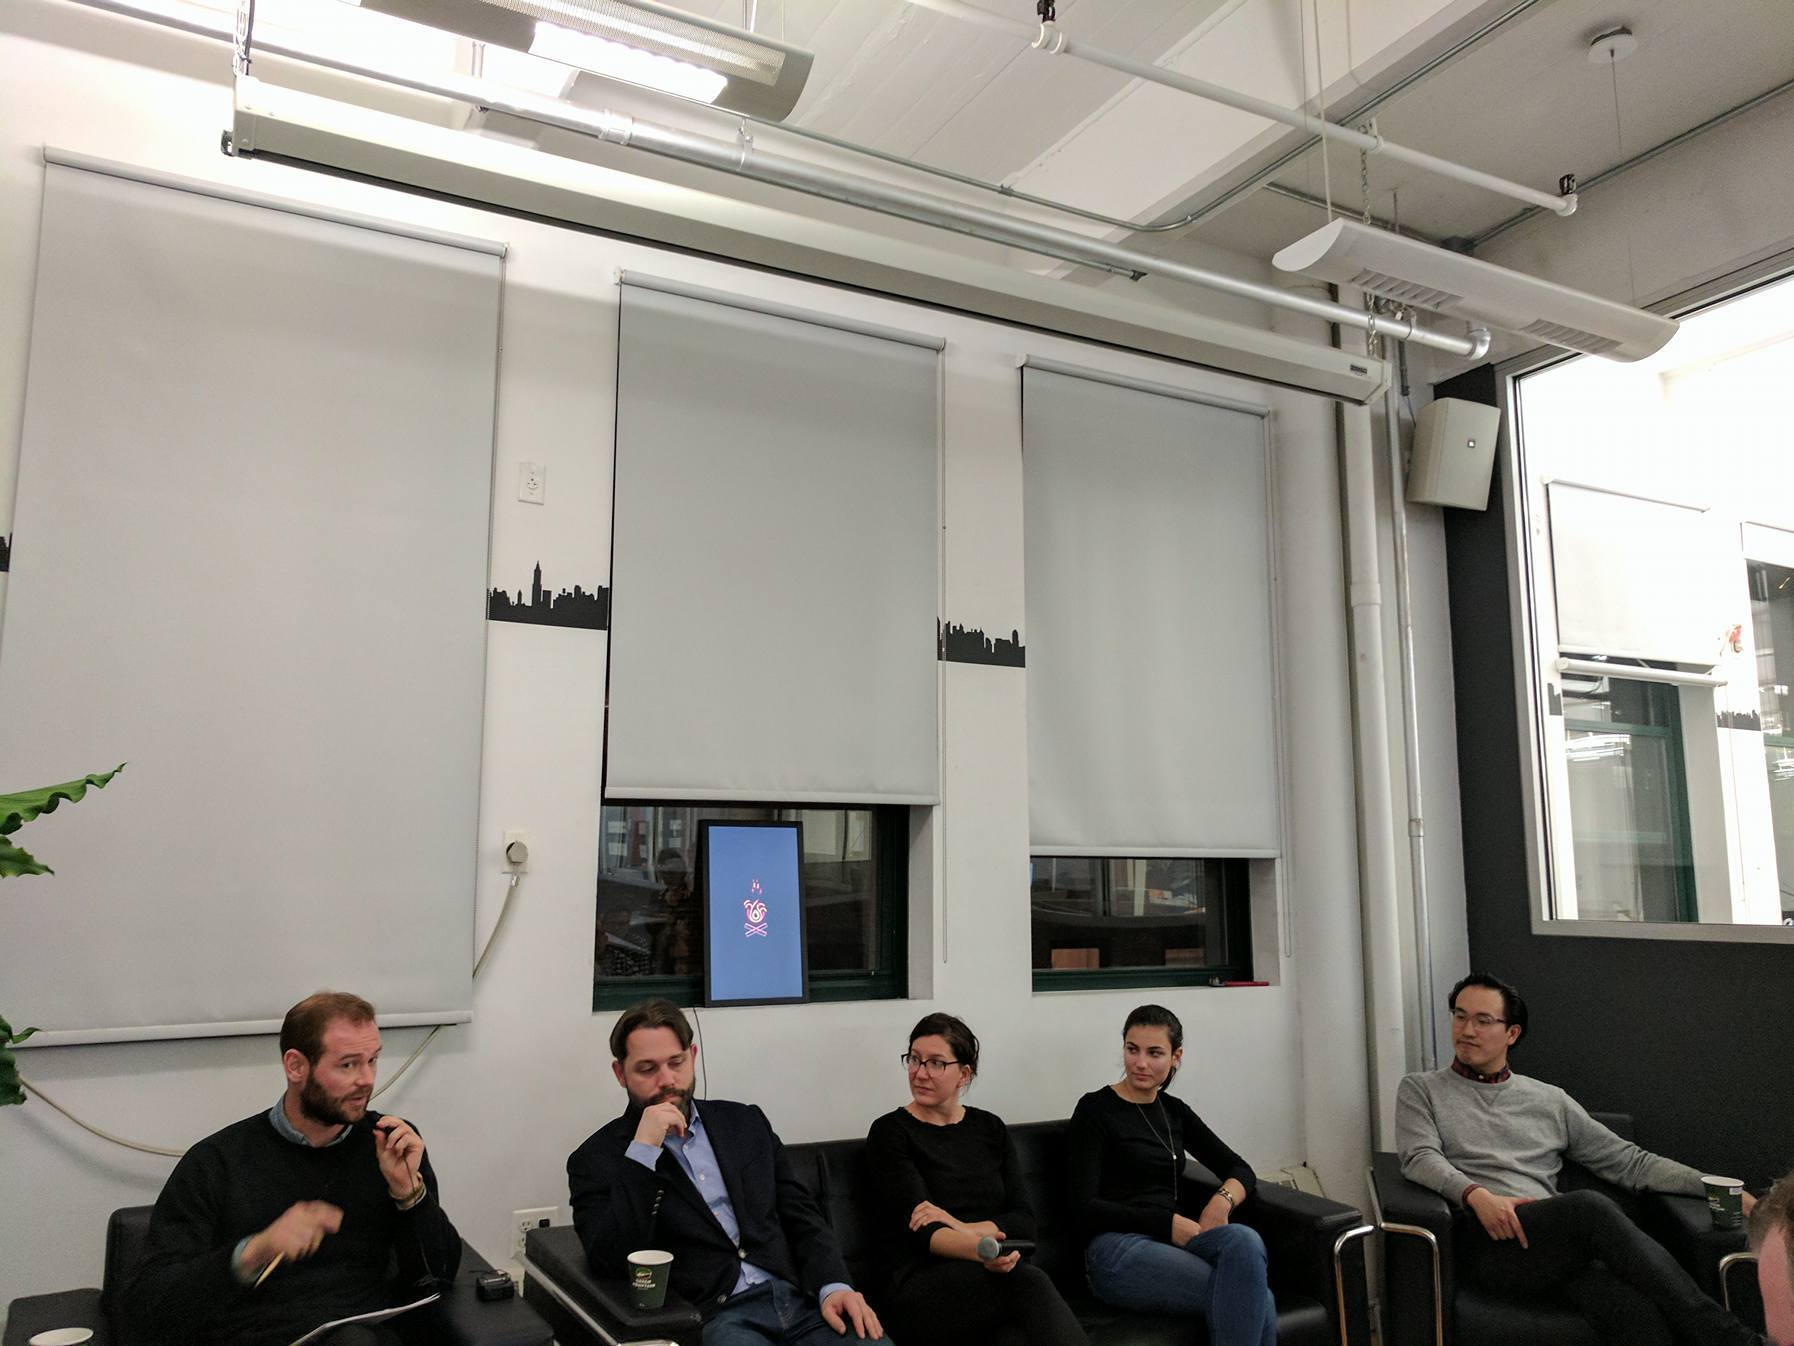 On Tuesday night at the Digital Future Lab in Brooklyn, AR/VR industry experts spoke about their predictions for AR/VR this year.